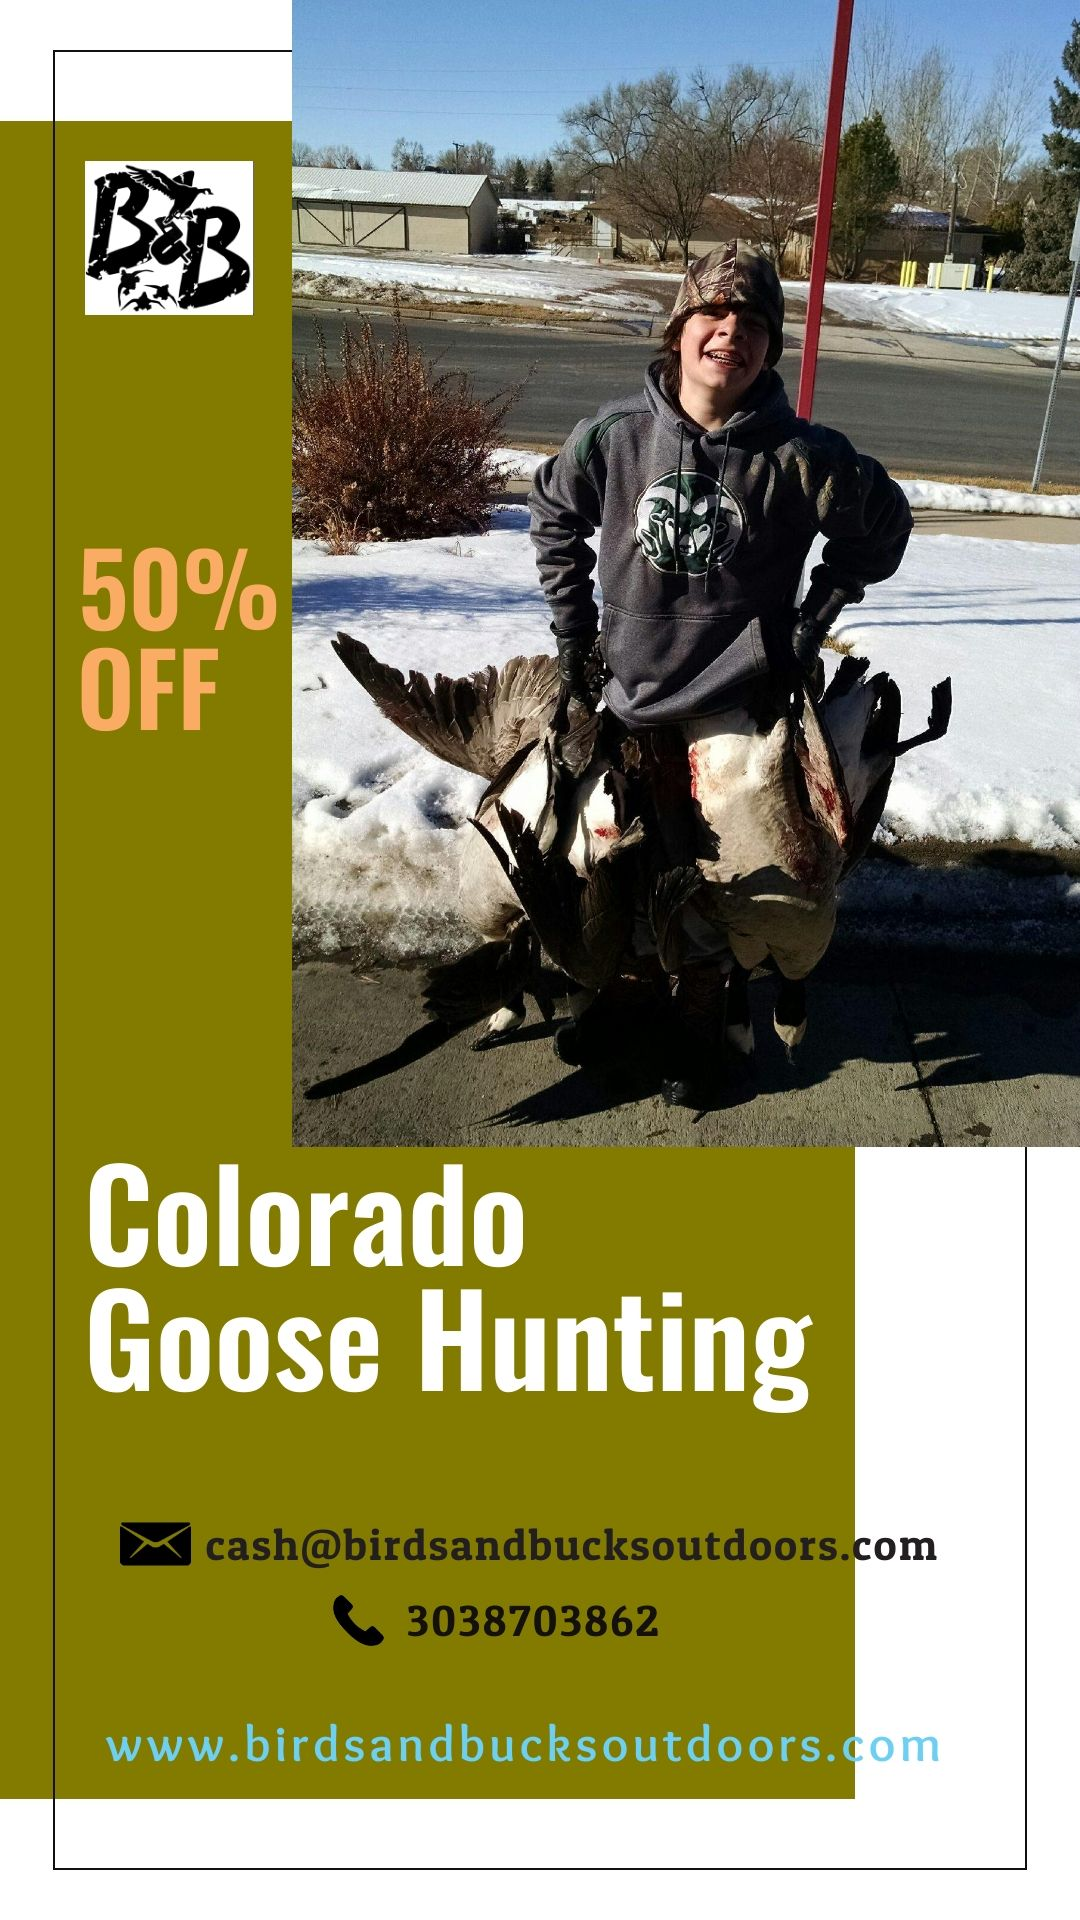 Search and connect to the best and experienced Waterfowl